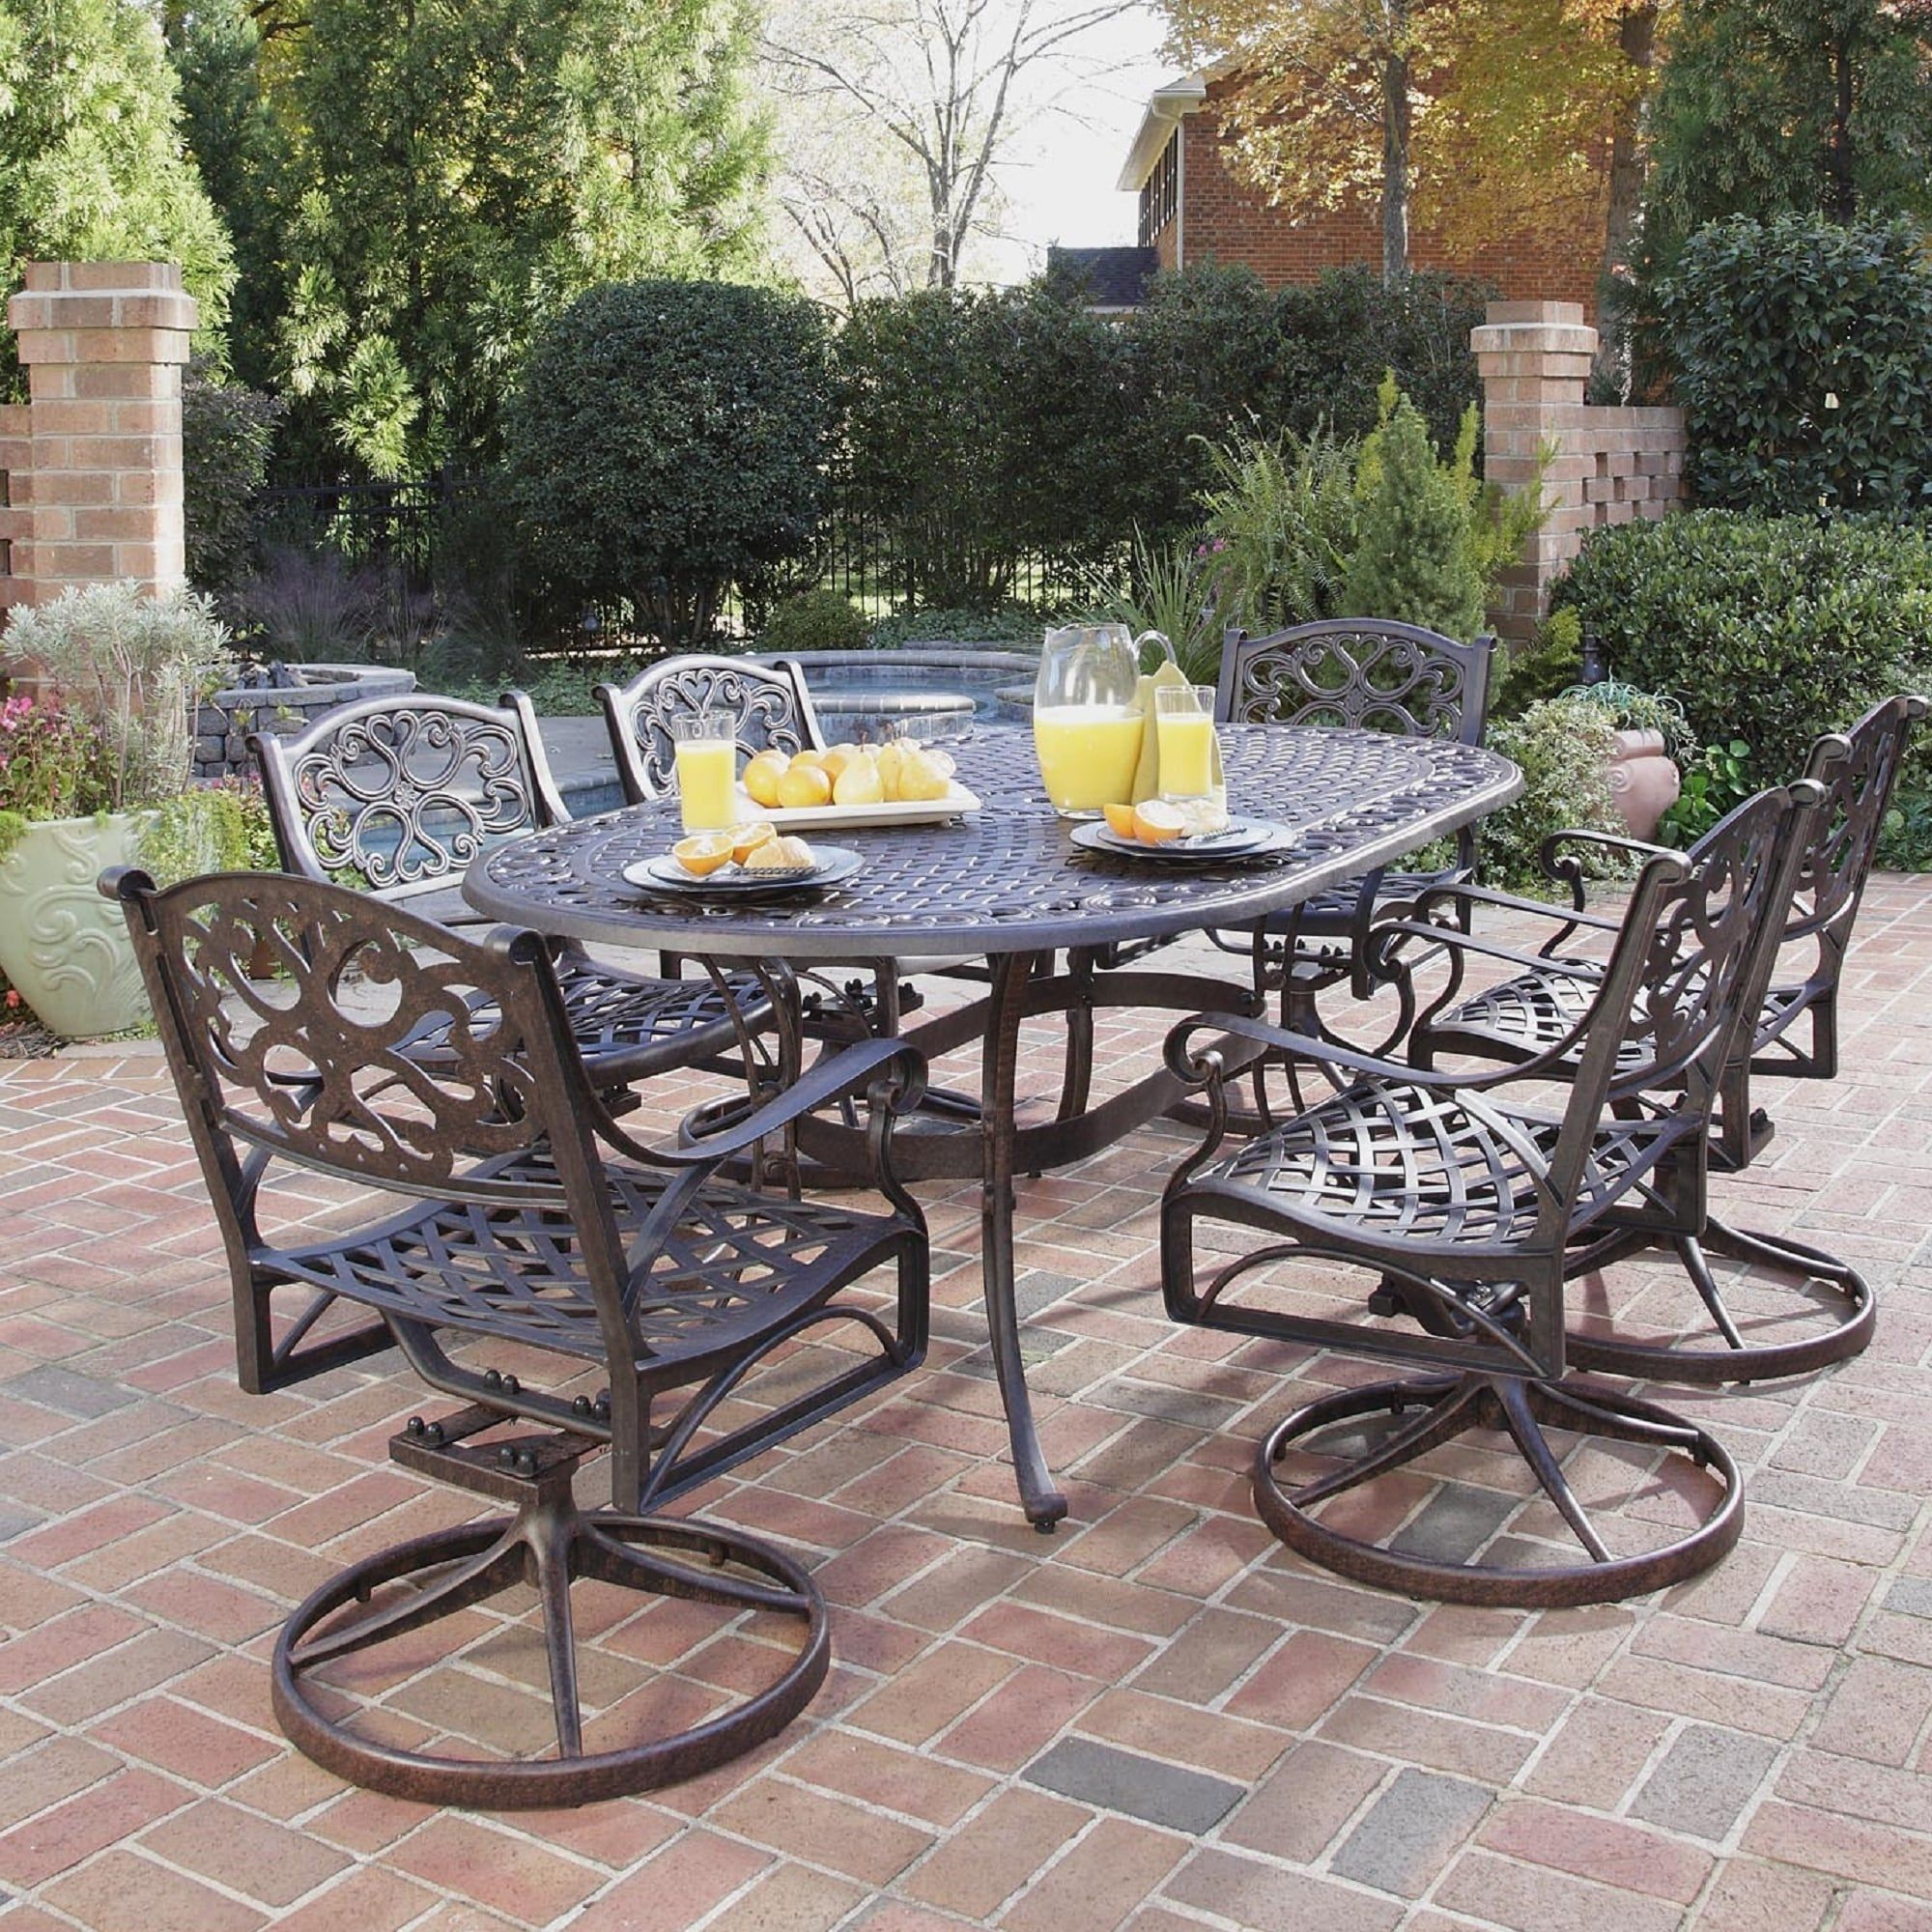 Patio Furniture Sets With Swivel Chairs.Home Styles Biscayne 7 Piece Dining Set 72 Oval Table With 6 Swivel